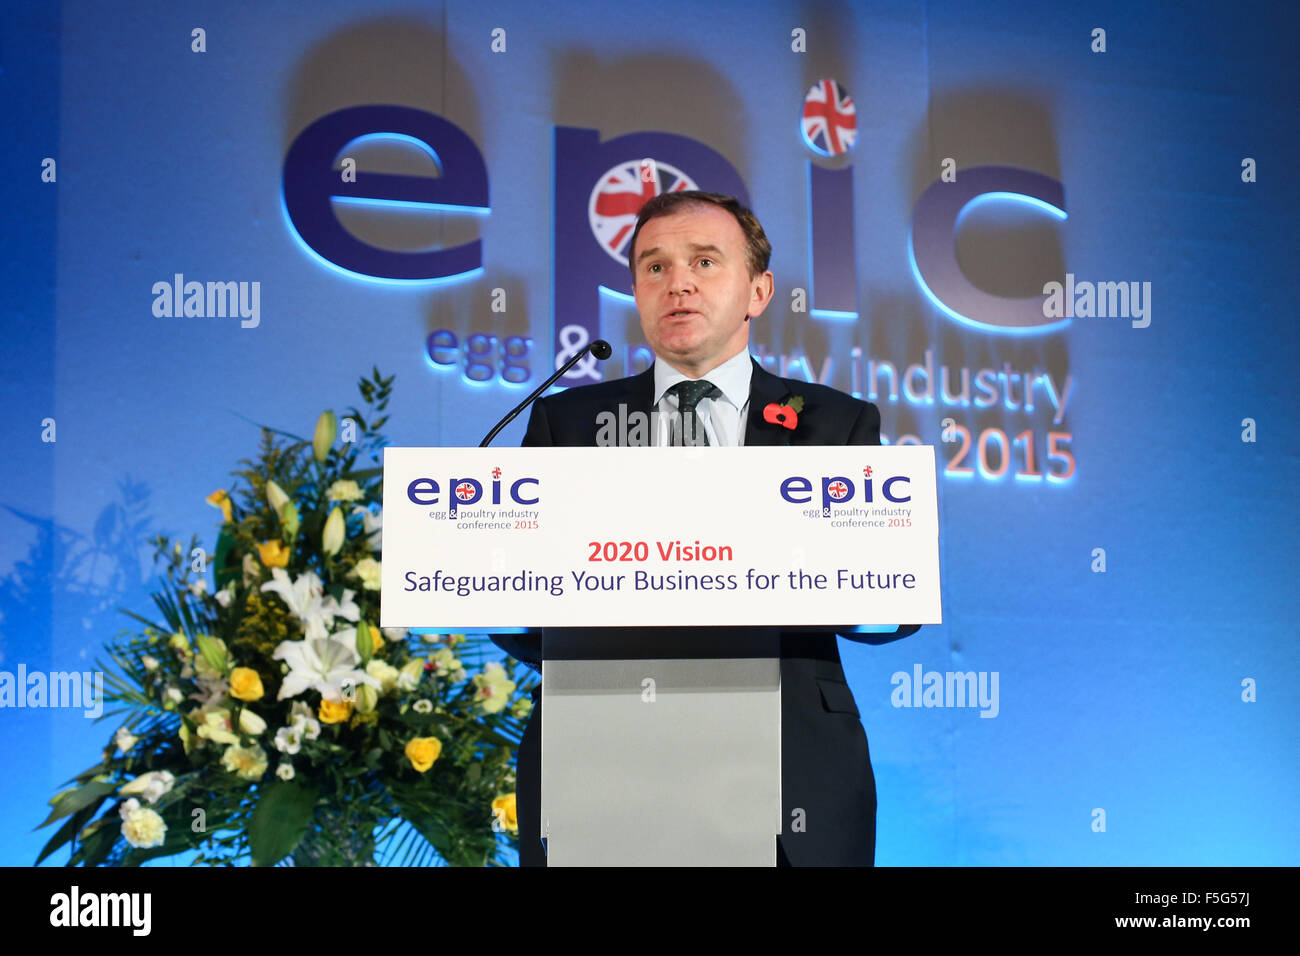 George Eustice, British Conservative Party politician, MP for Camborne and Redruth, Minister for Farming. - Stock Image